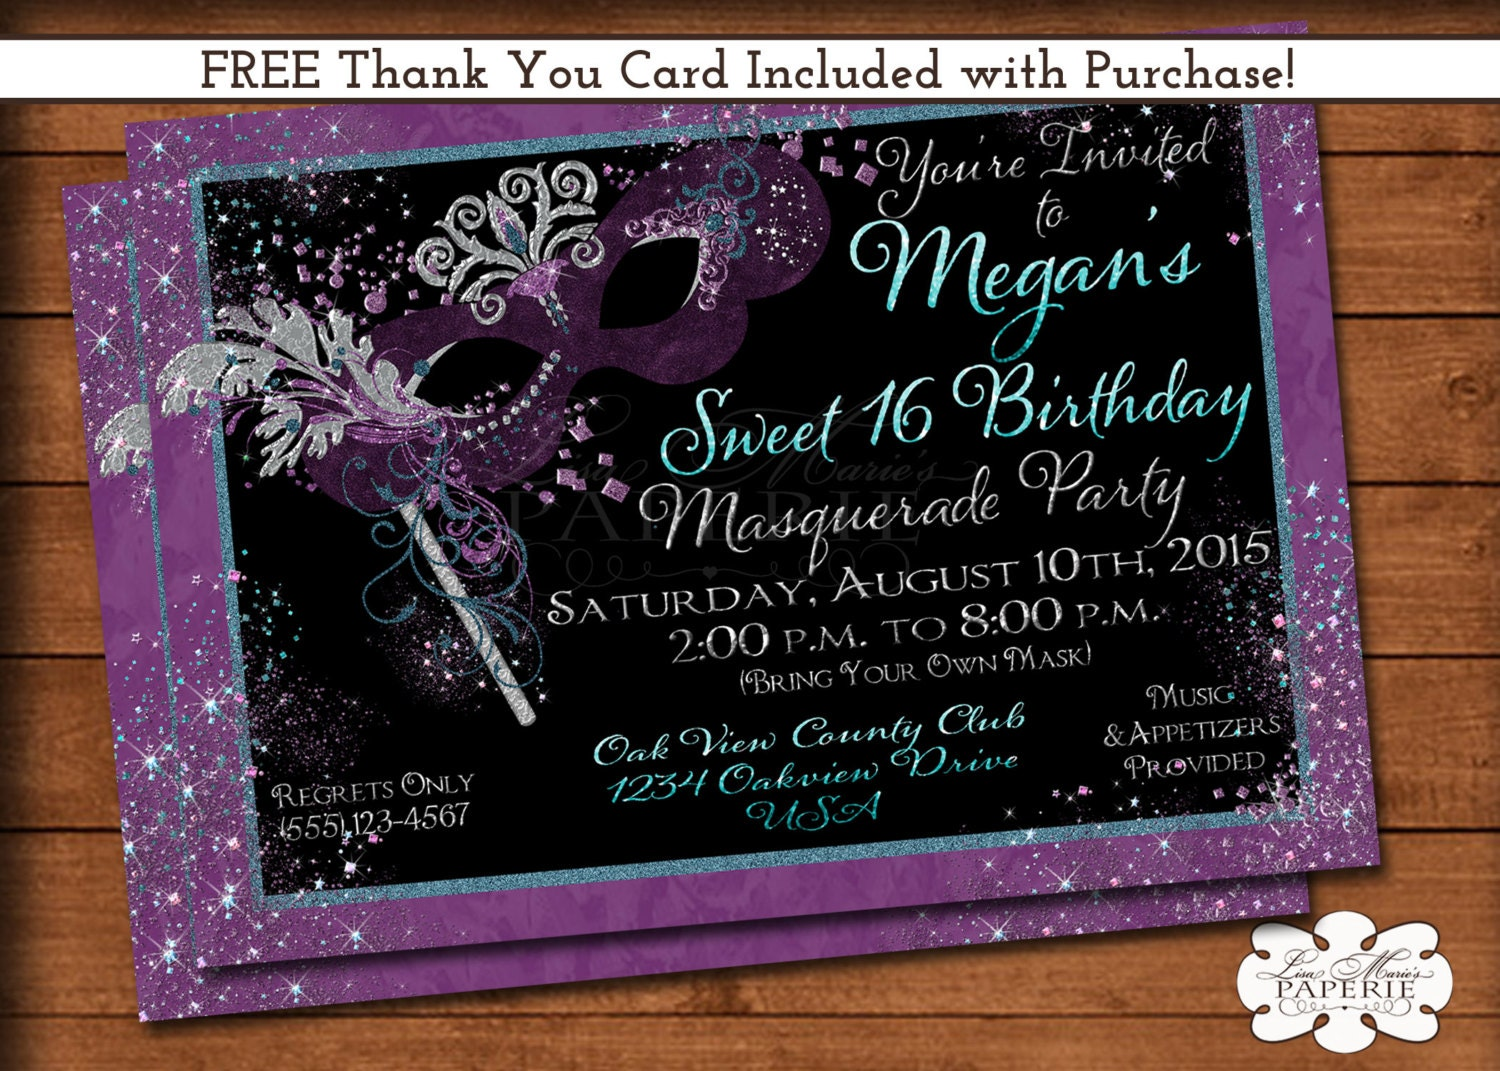 mardi gras invitation masquerade party invitation sweet 16